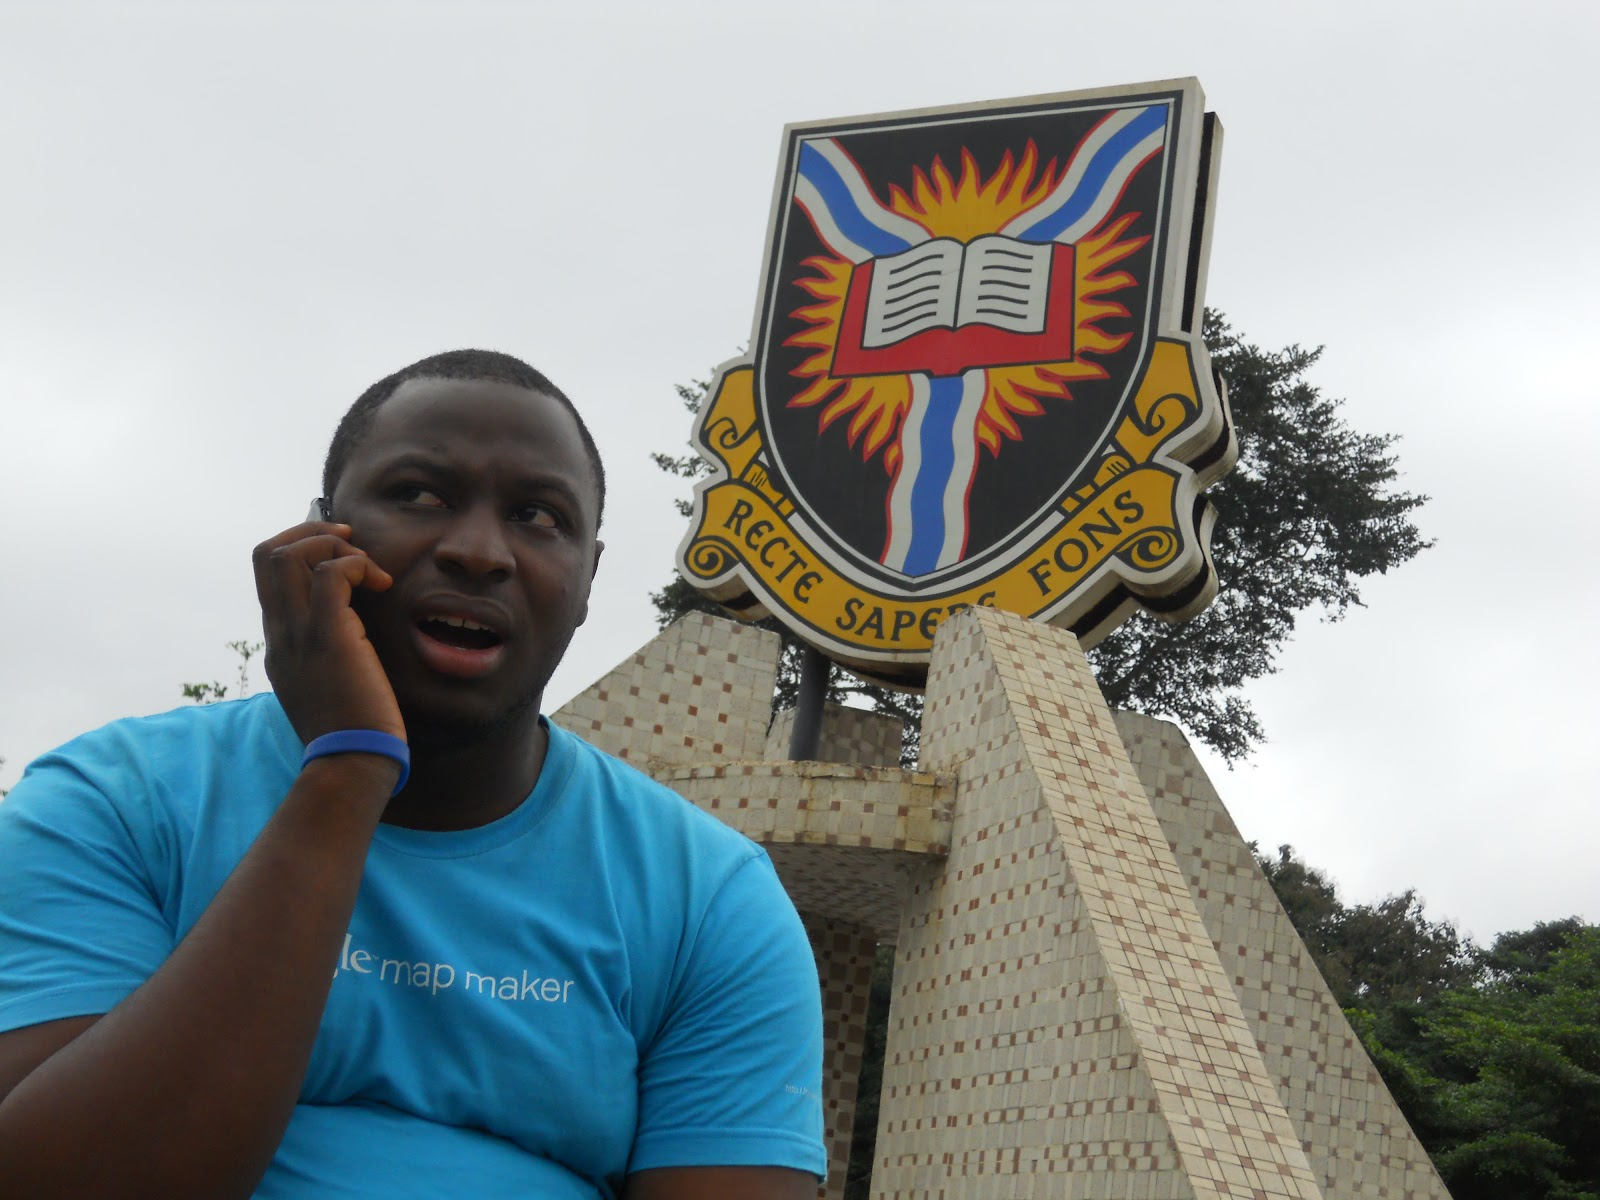 interview google star ambassador the ian campus it s more about spotting opportunities and matching them up a course of study a vocation or an idea to create value adepoju emmanuel abiodun s story